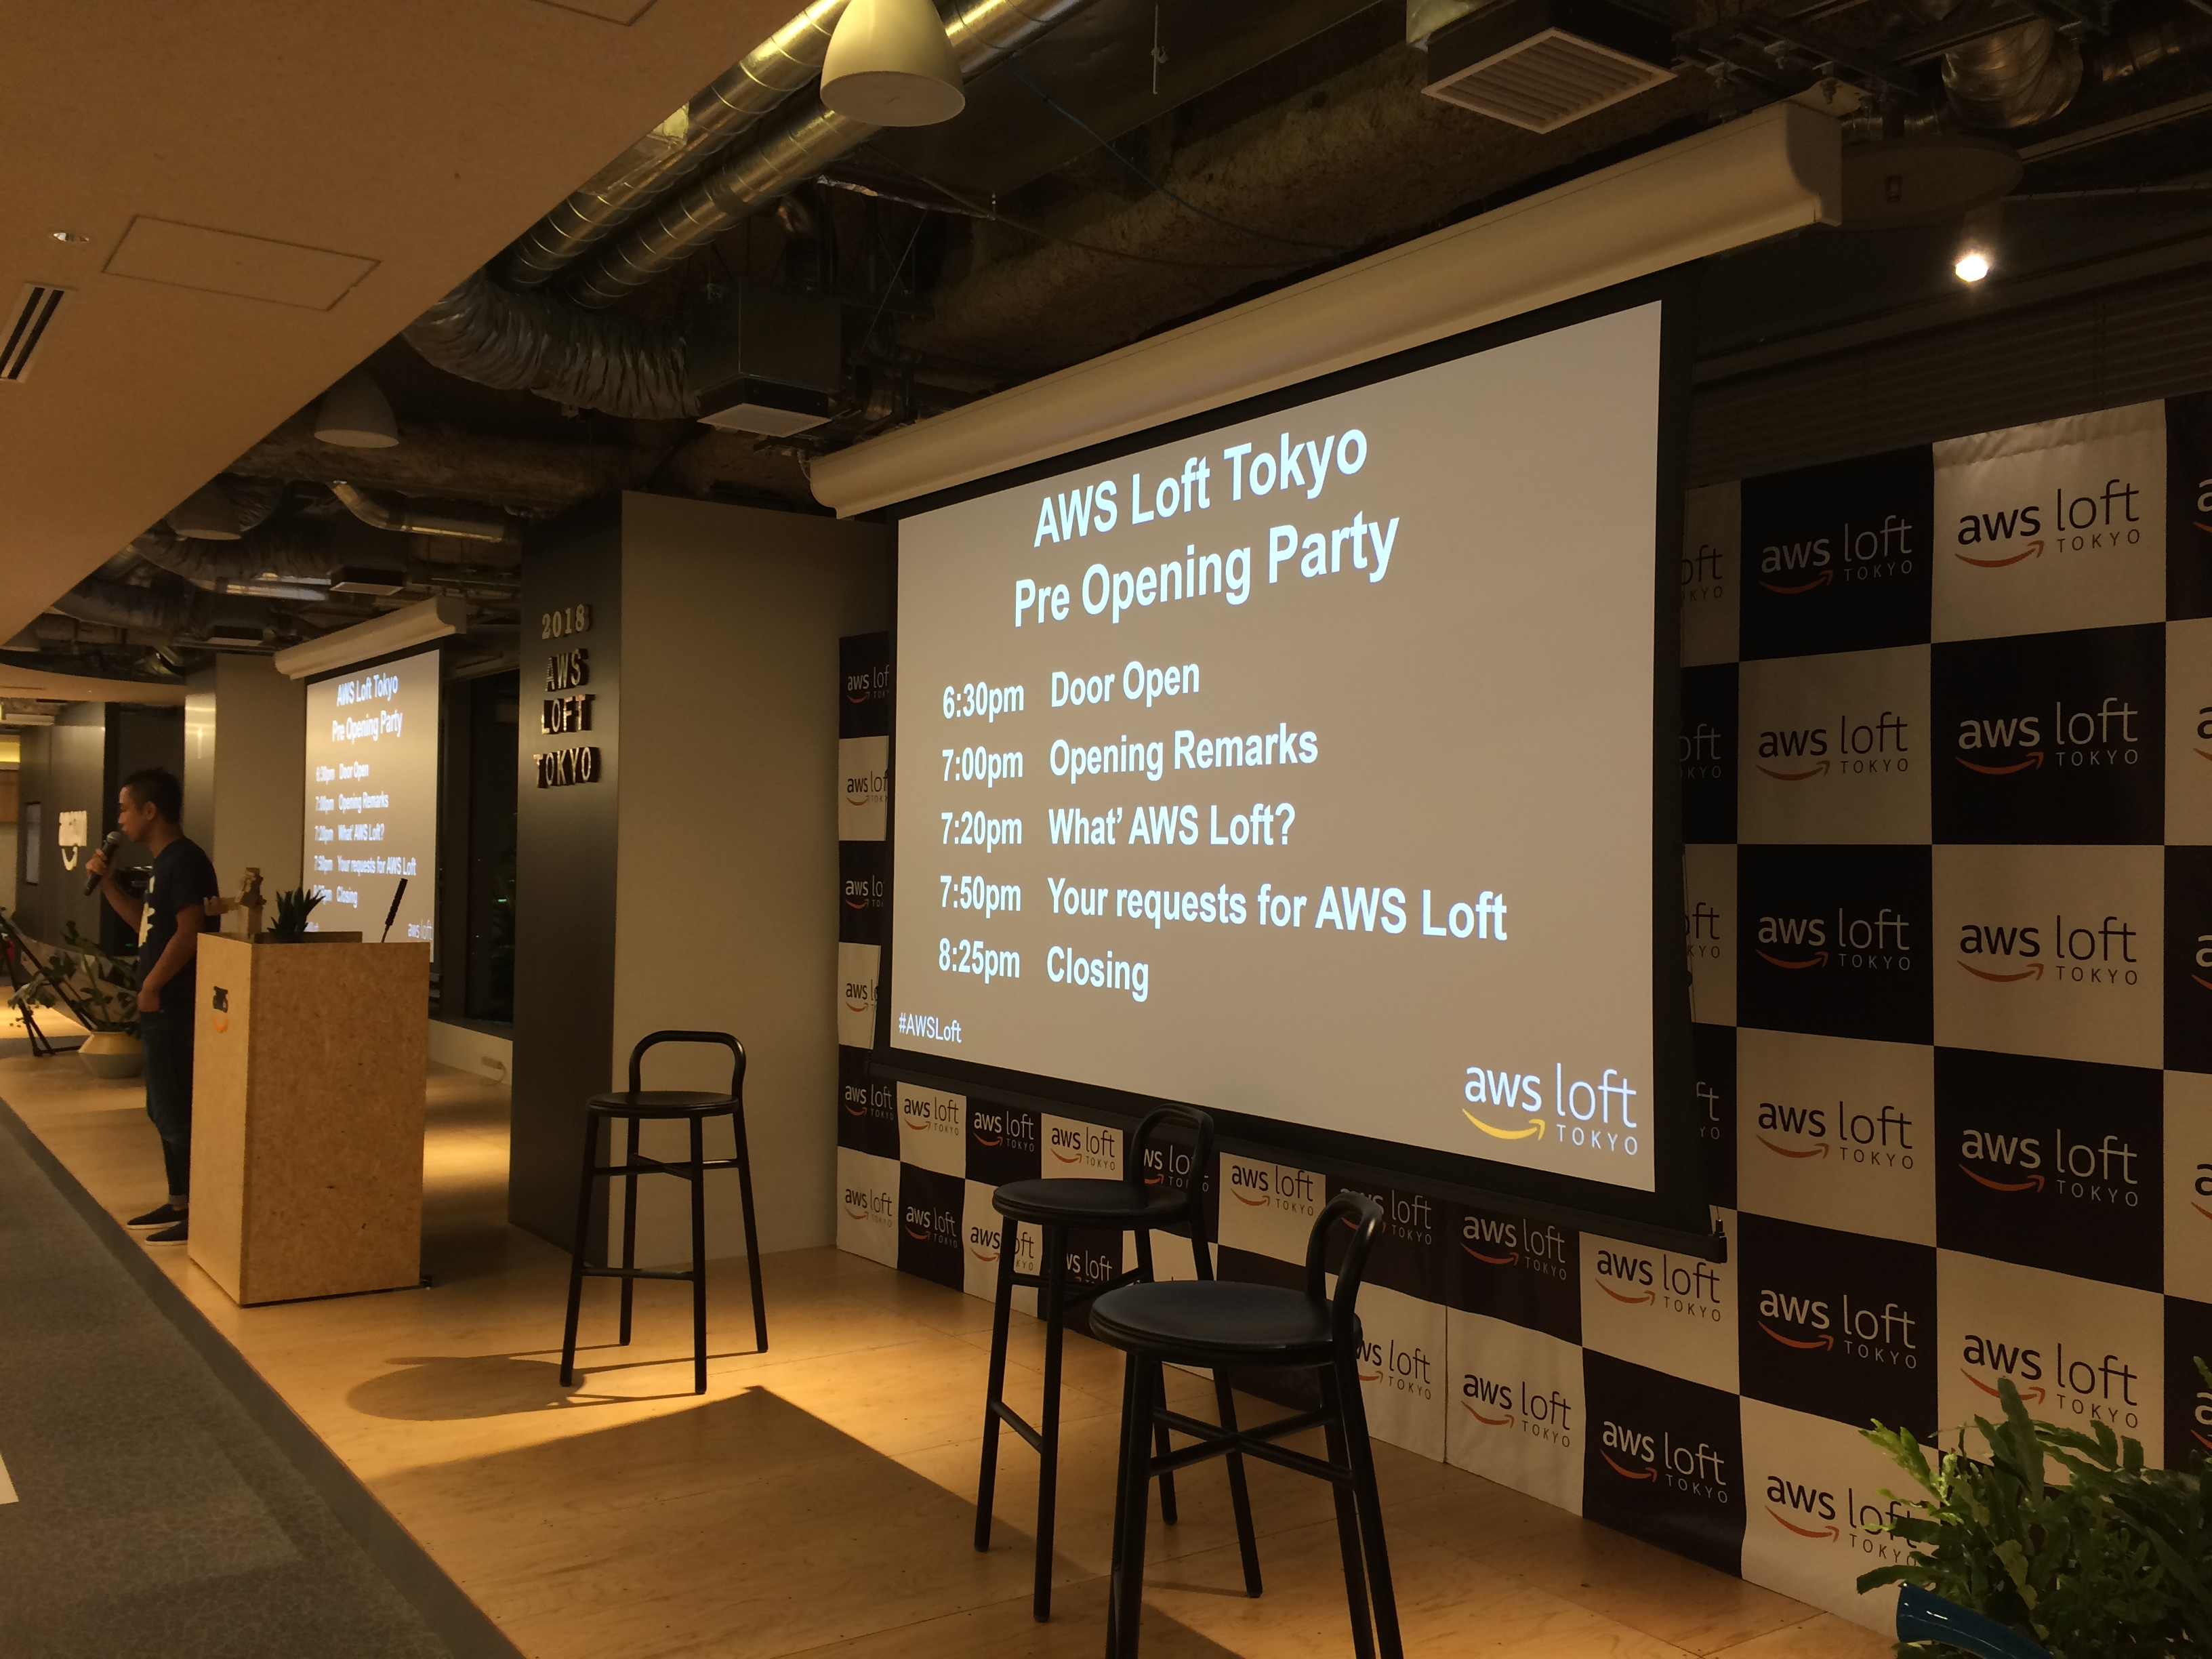 awsスタートアップ向け施設 aws loft tokyo のpre opening partyに参加